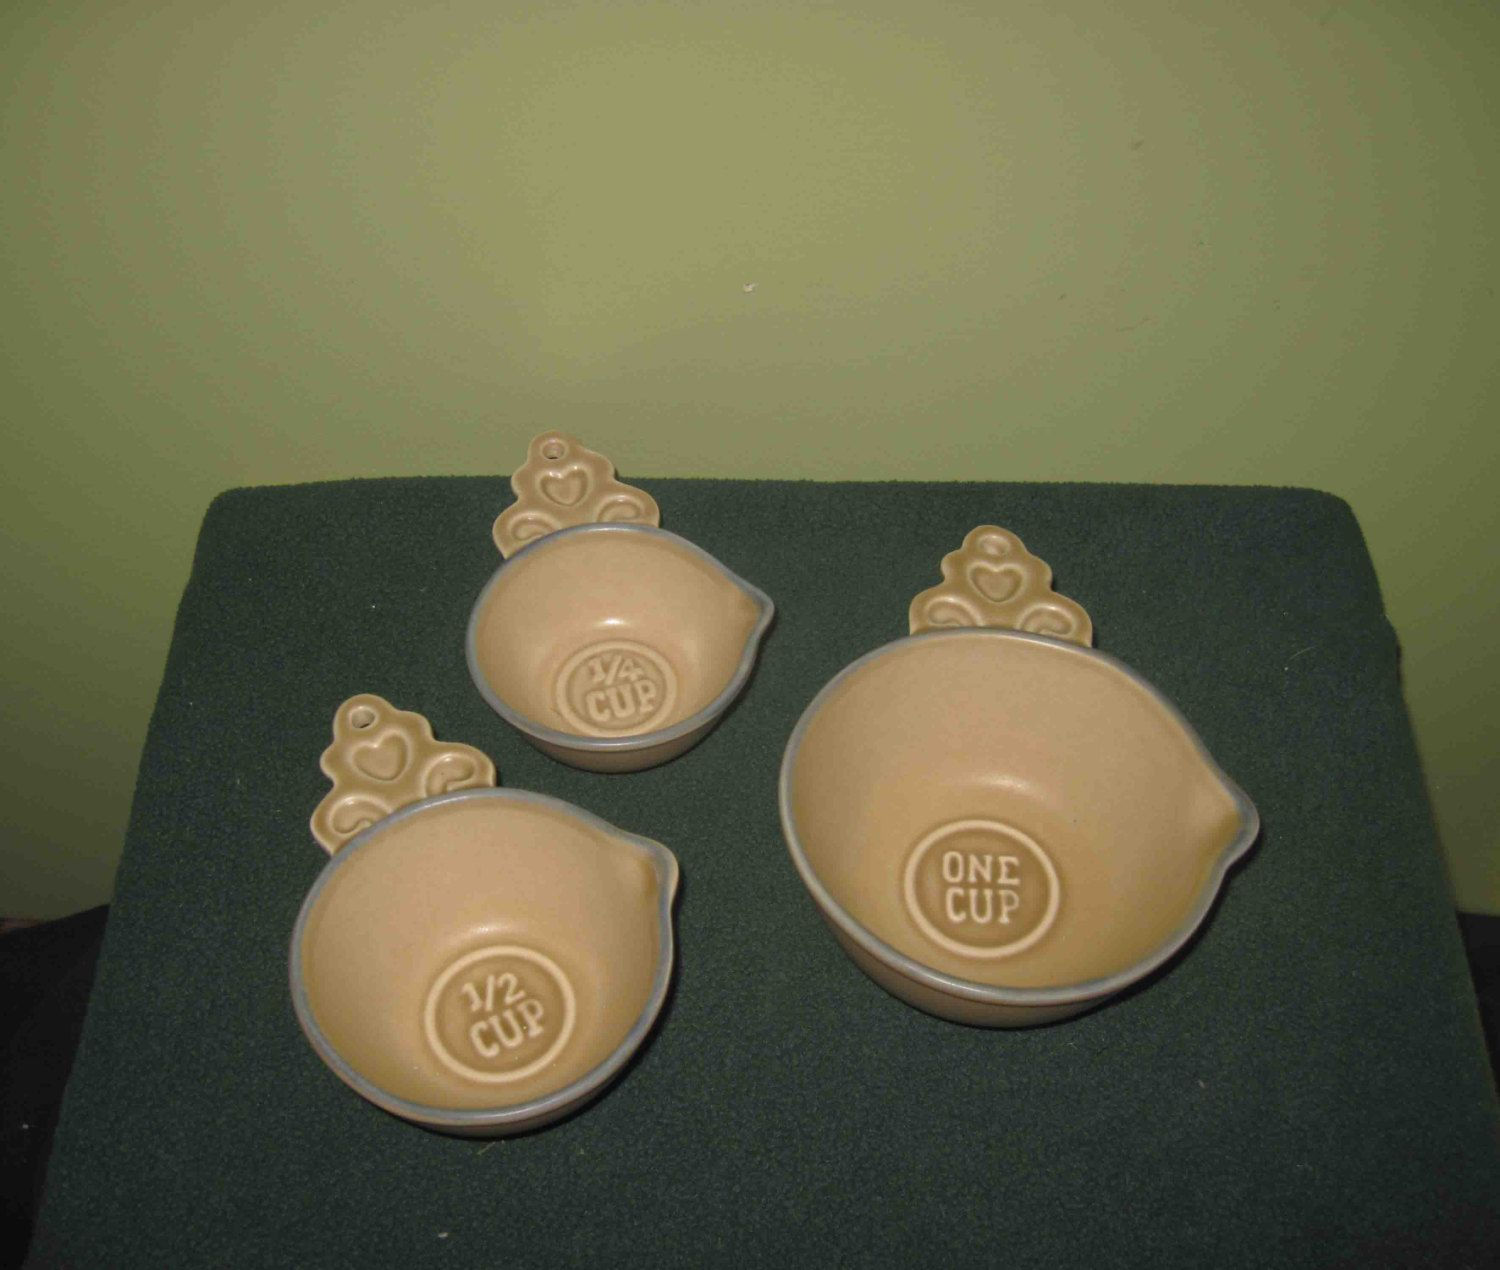 Pfaltzgraff Folk Art Measuring Cups 3 Pieces Set 1 Cup, 1/2 Cup And 1/4 Cup,Vintage by Incredibletreasures on Etsy